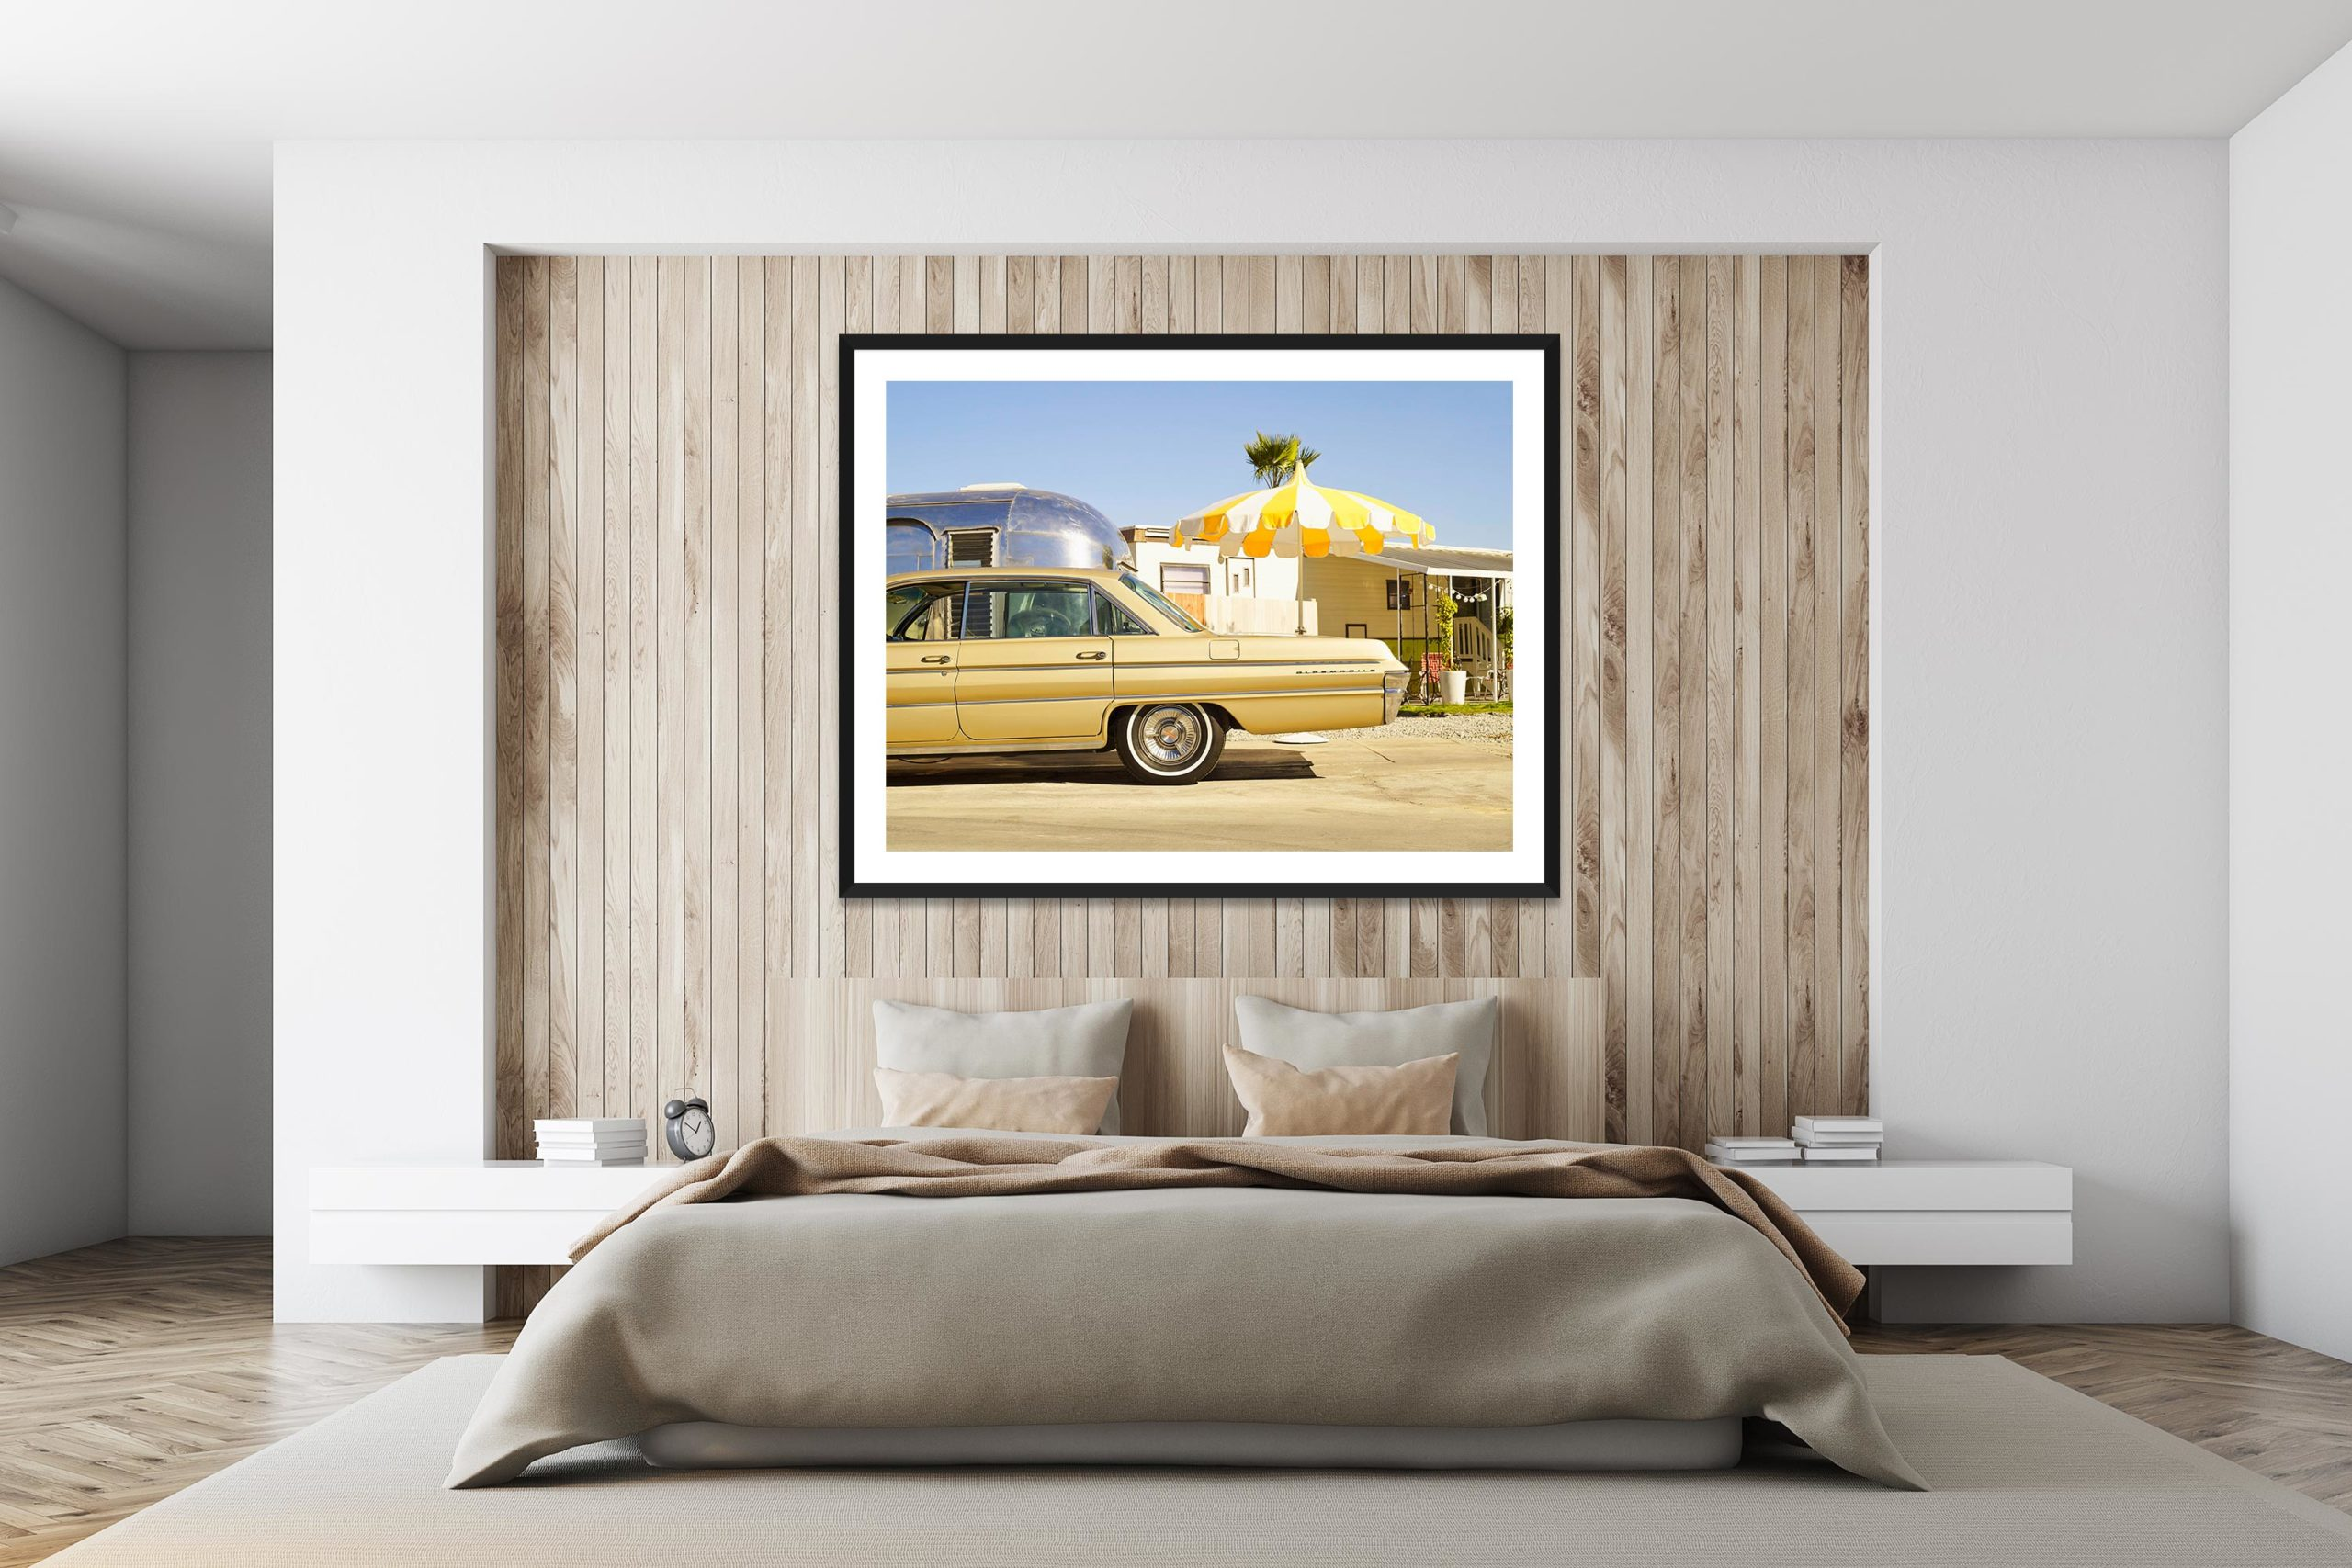 Oldsmobile In The Trailer Park - Black Frame - I Heart Palm Springs Collection - Fine Art Photography by Toby Dixon